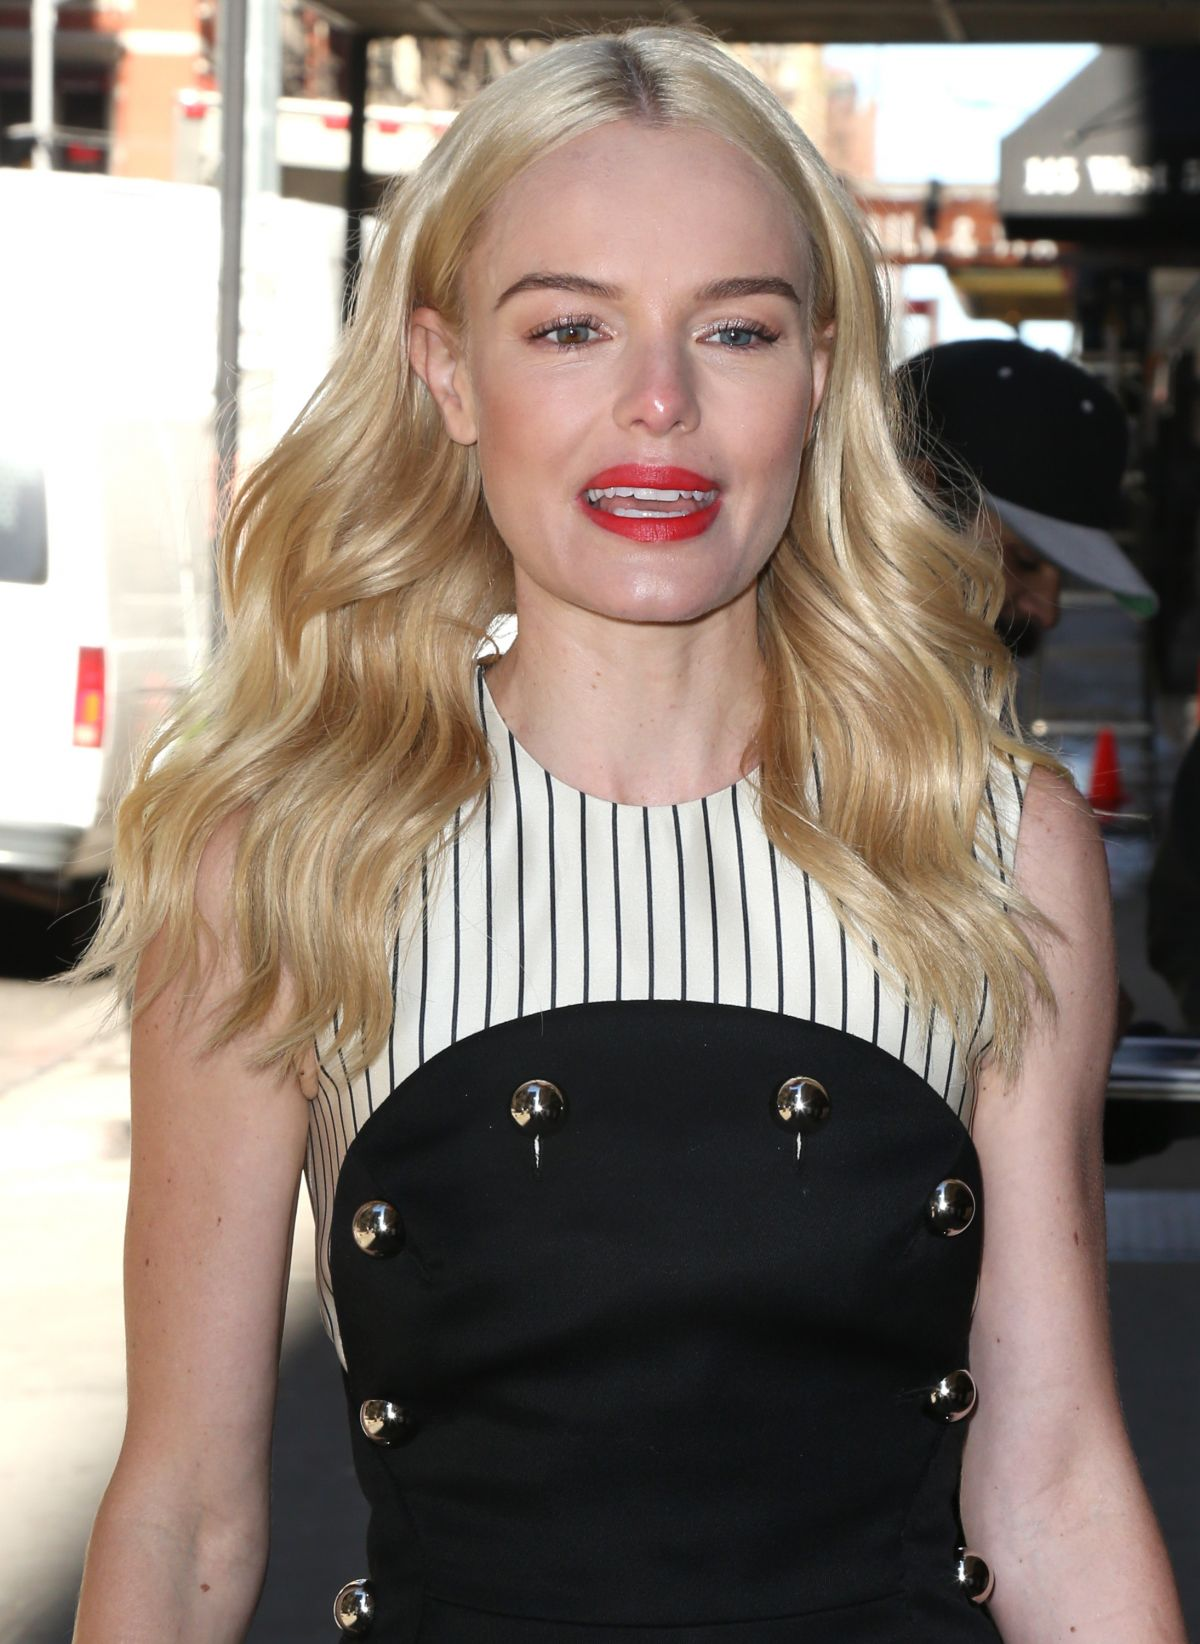 KATE BOSWORTH at Crack... Kate Bosworth